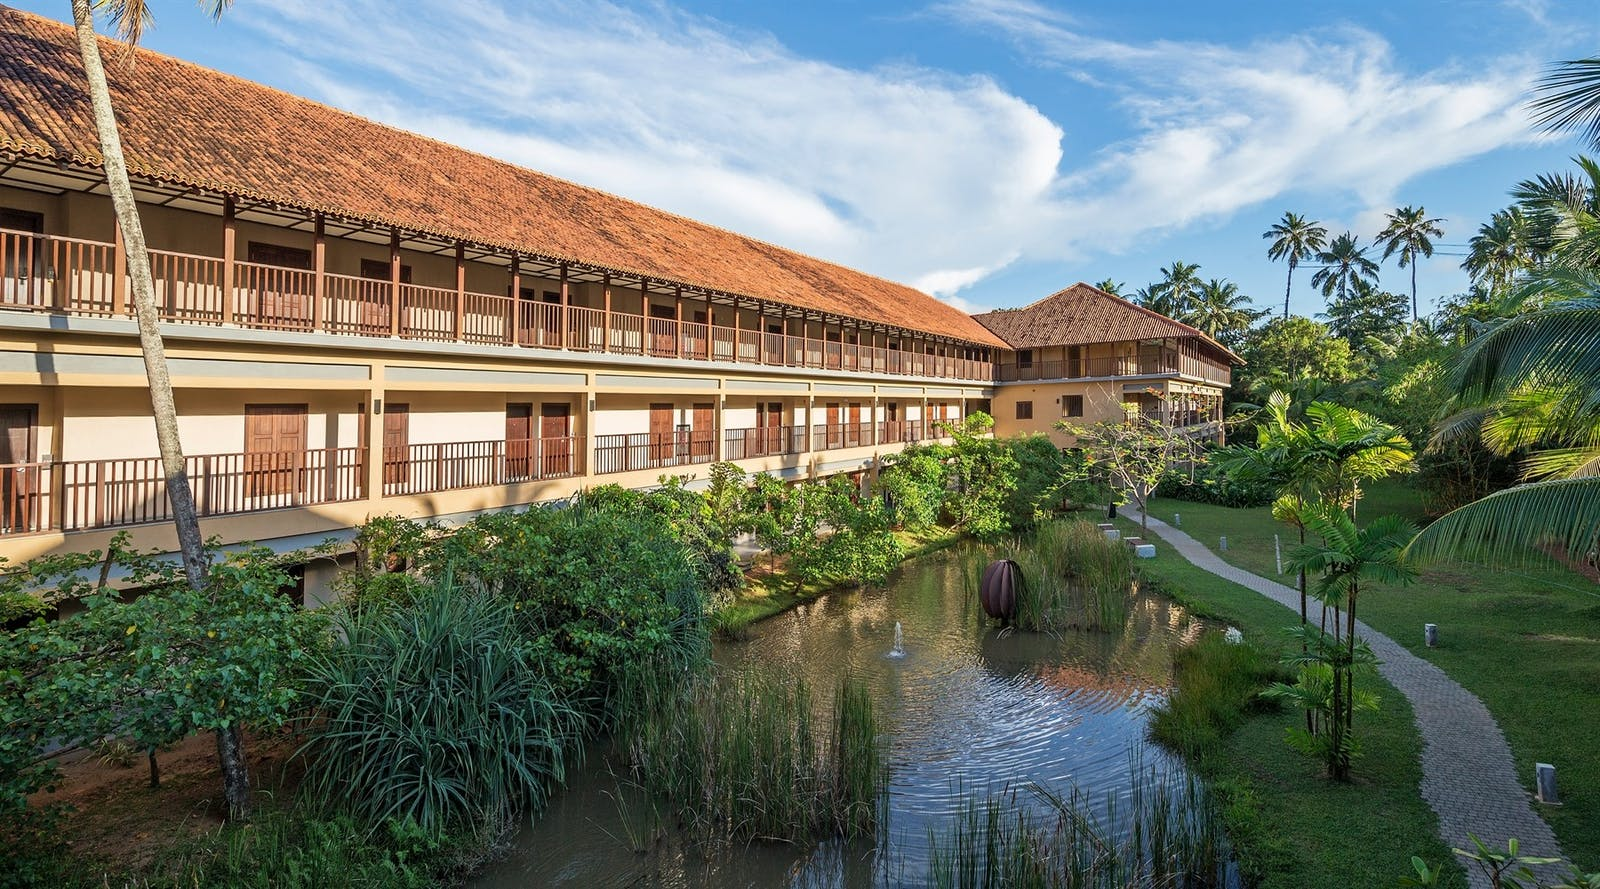 Resort lagoon side, Anantara Kalutara, Sri Lanka